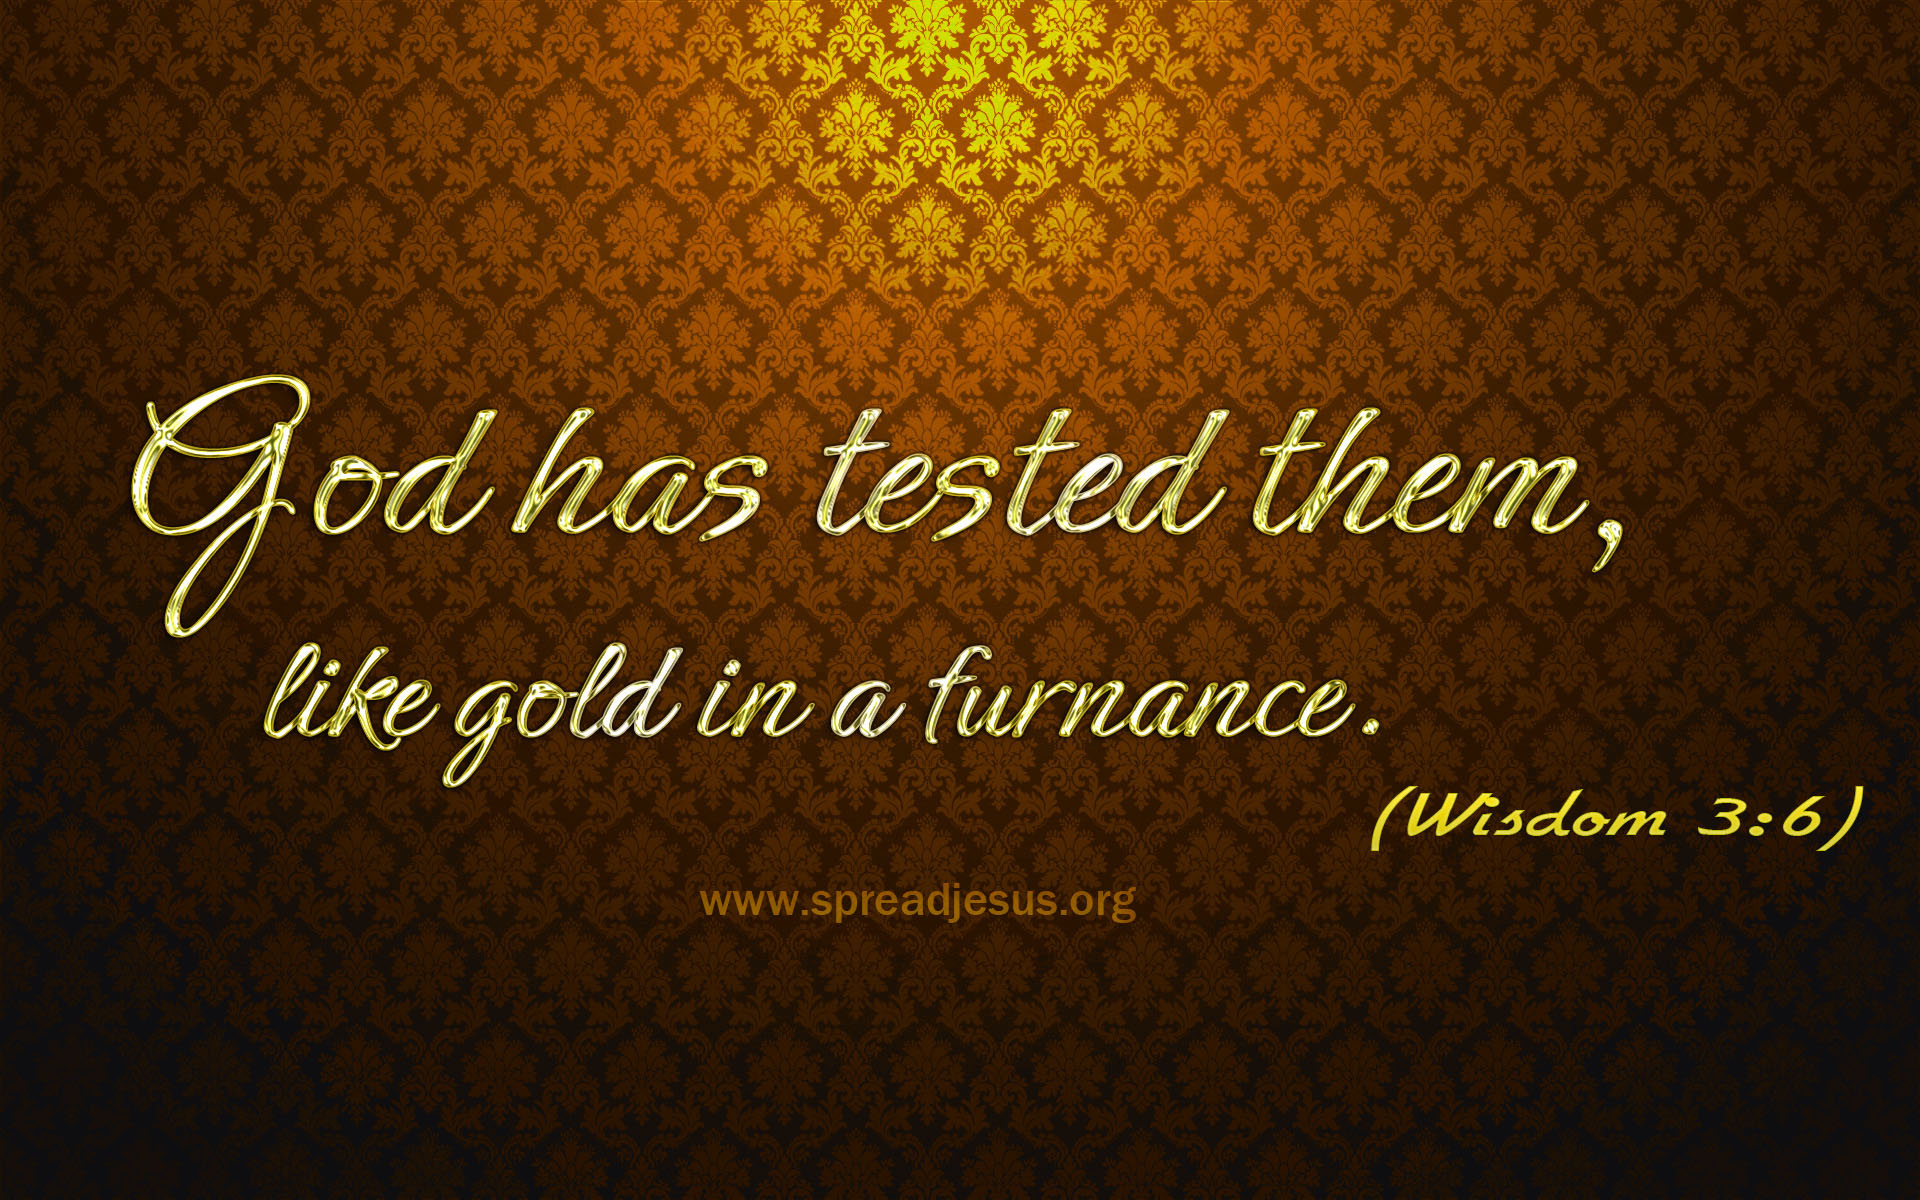 WISDOM 3:6-Bible Quotes HD-WALLPAPERS DOWNLOAD God has tested them, Like gold in a furnance. (WISDOM 3:6)